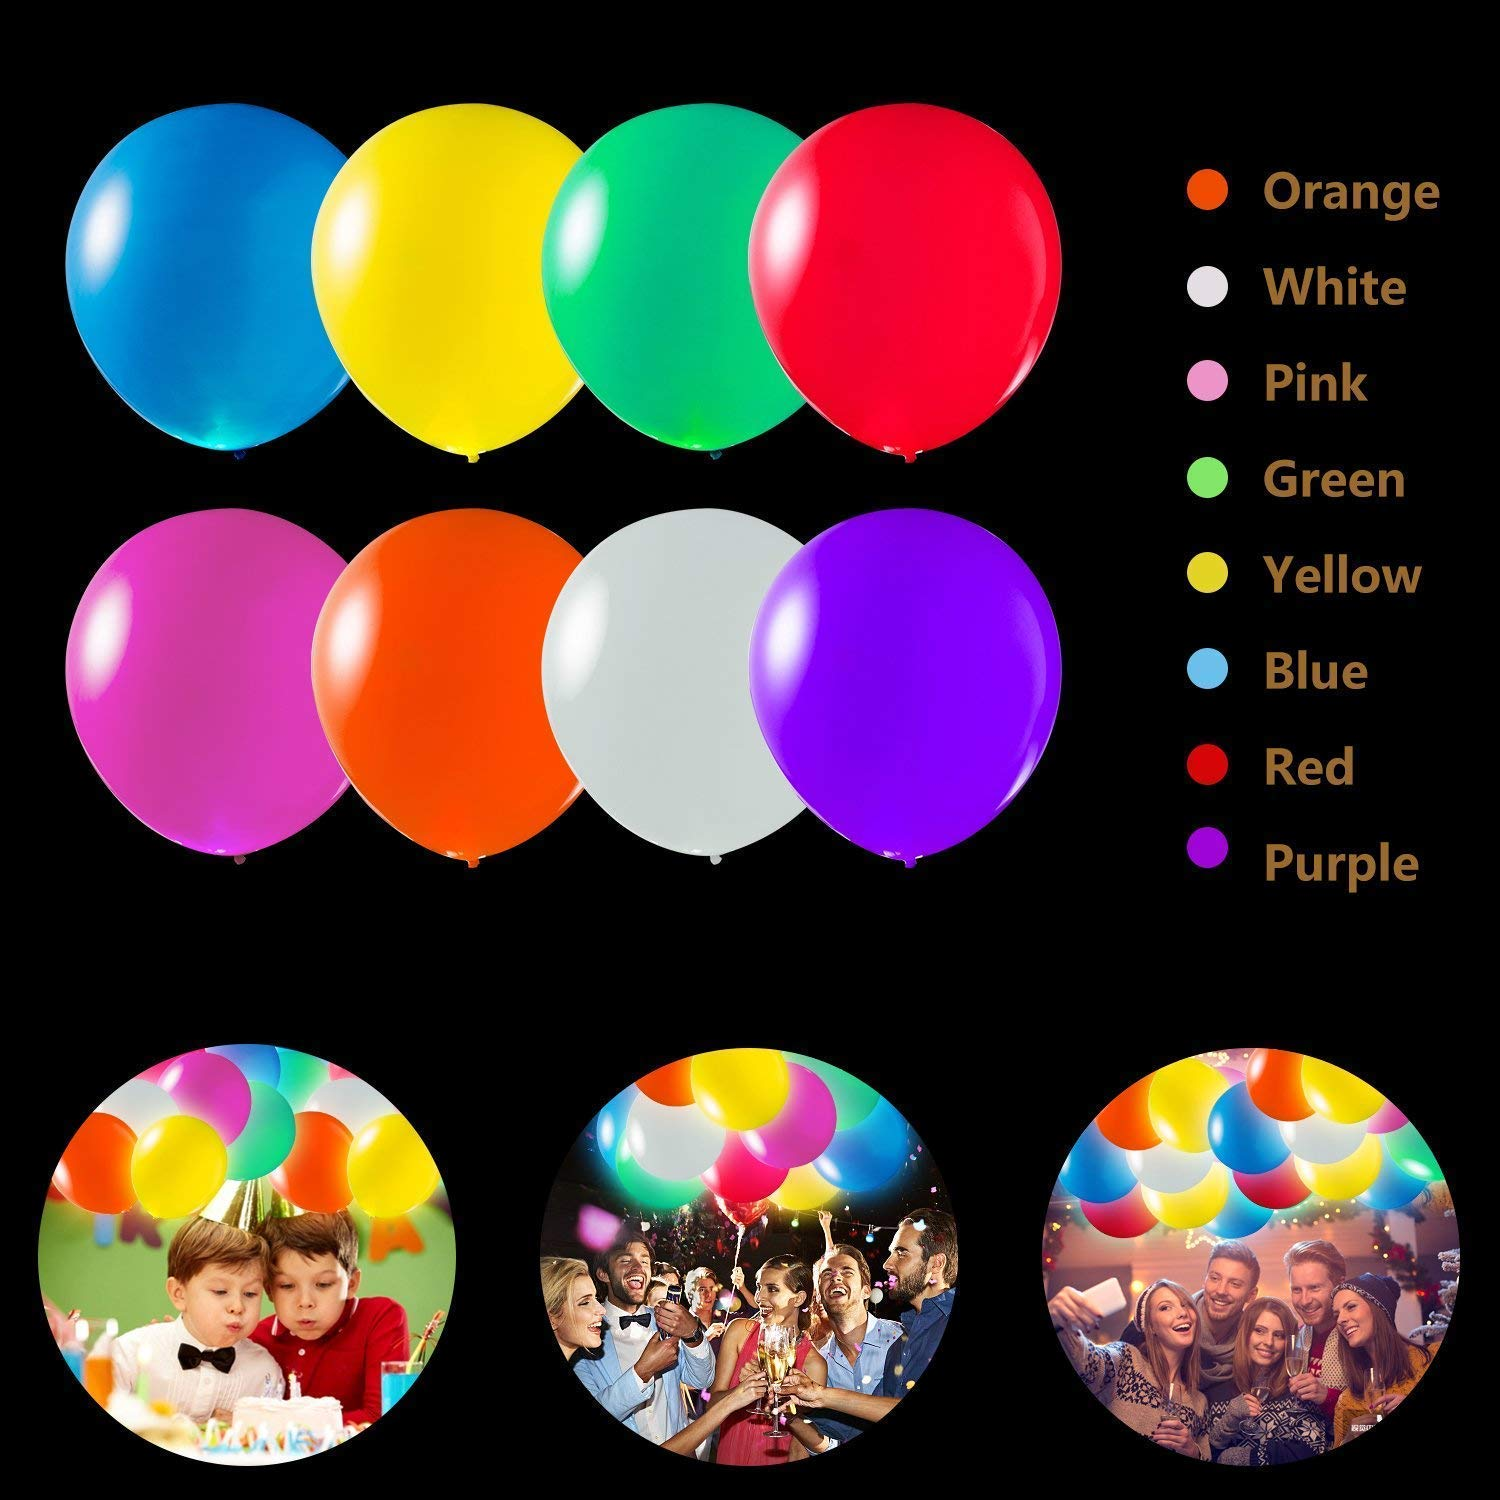 TECHSHARE 32 Pack LED Light Up Balloons, 8 Colors Flashing Lights Glow in The Dark Balloons for Party Supplies Birthday Party Wedding Decorations - Can be Filled with Helium, Air by TECHSHARE (Image #6)